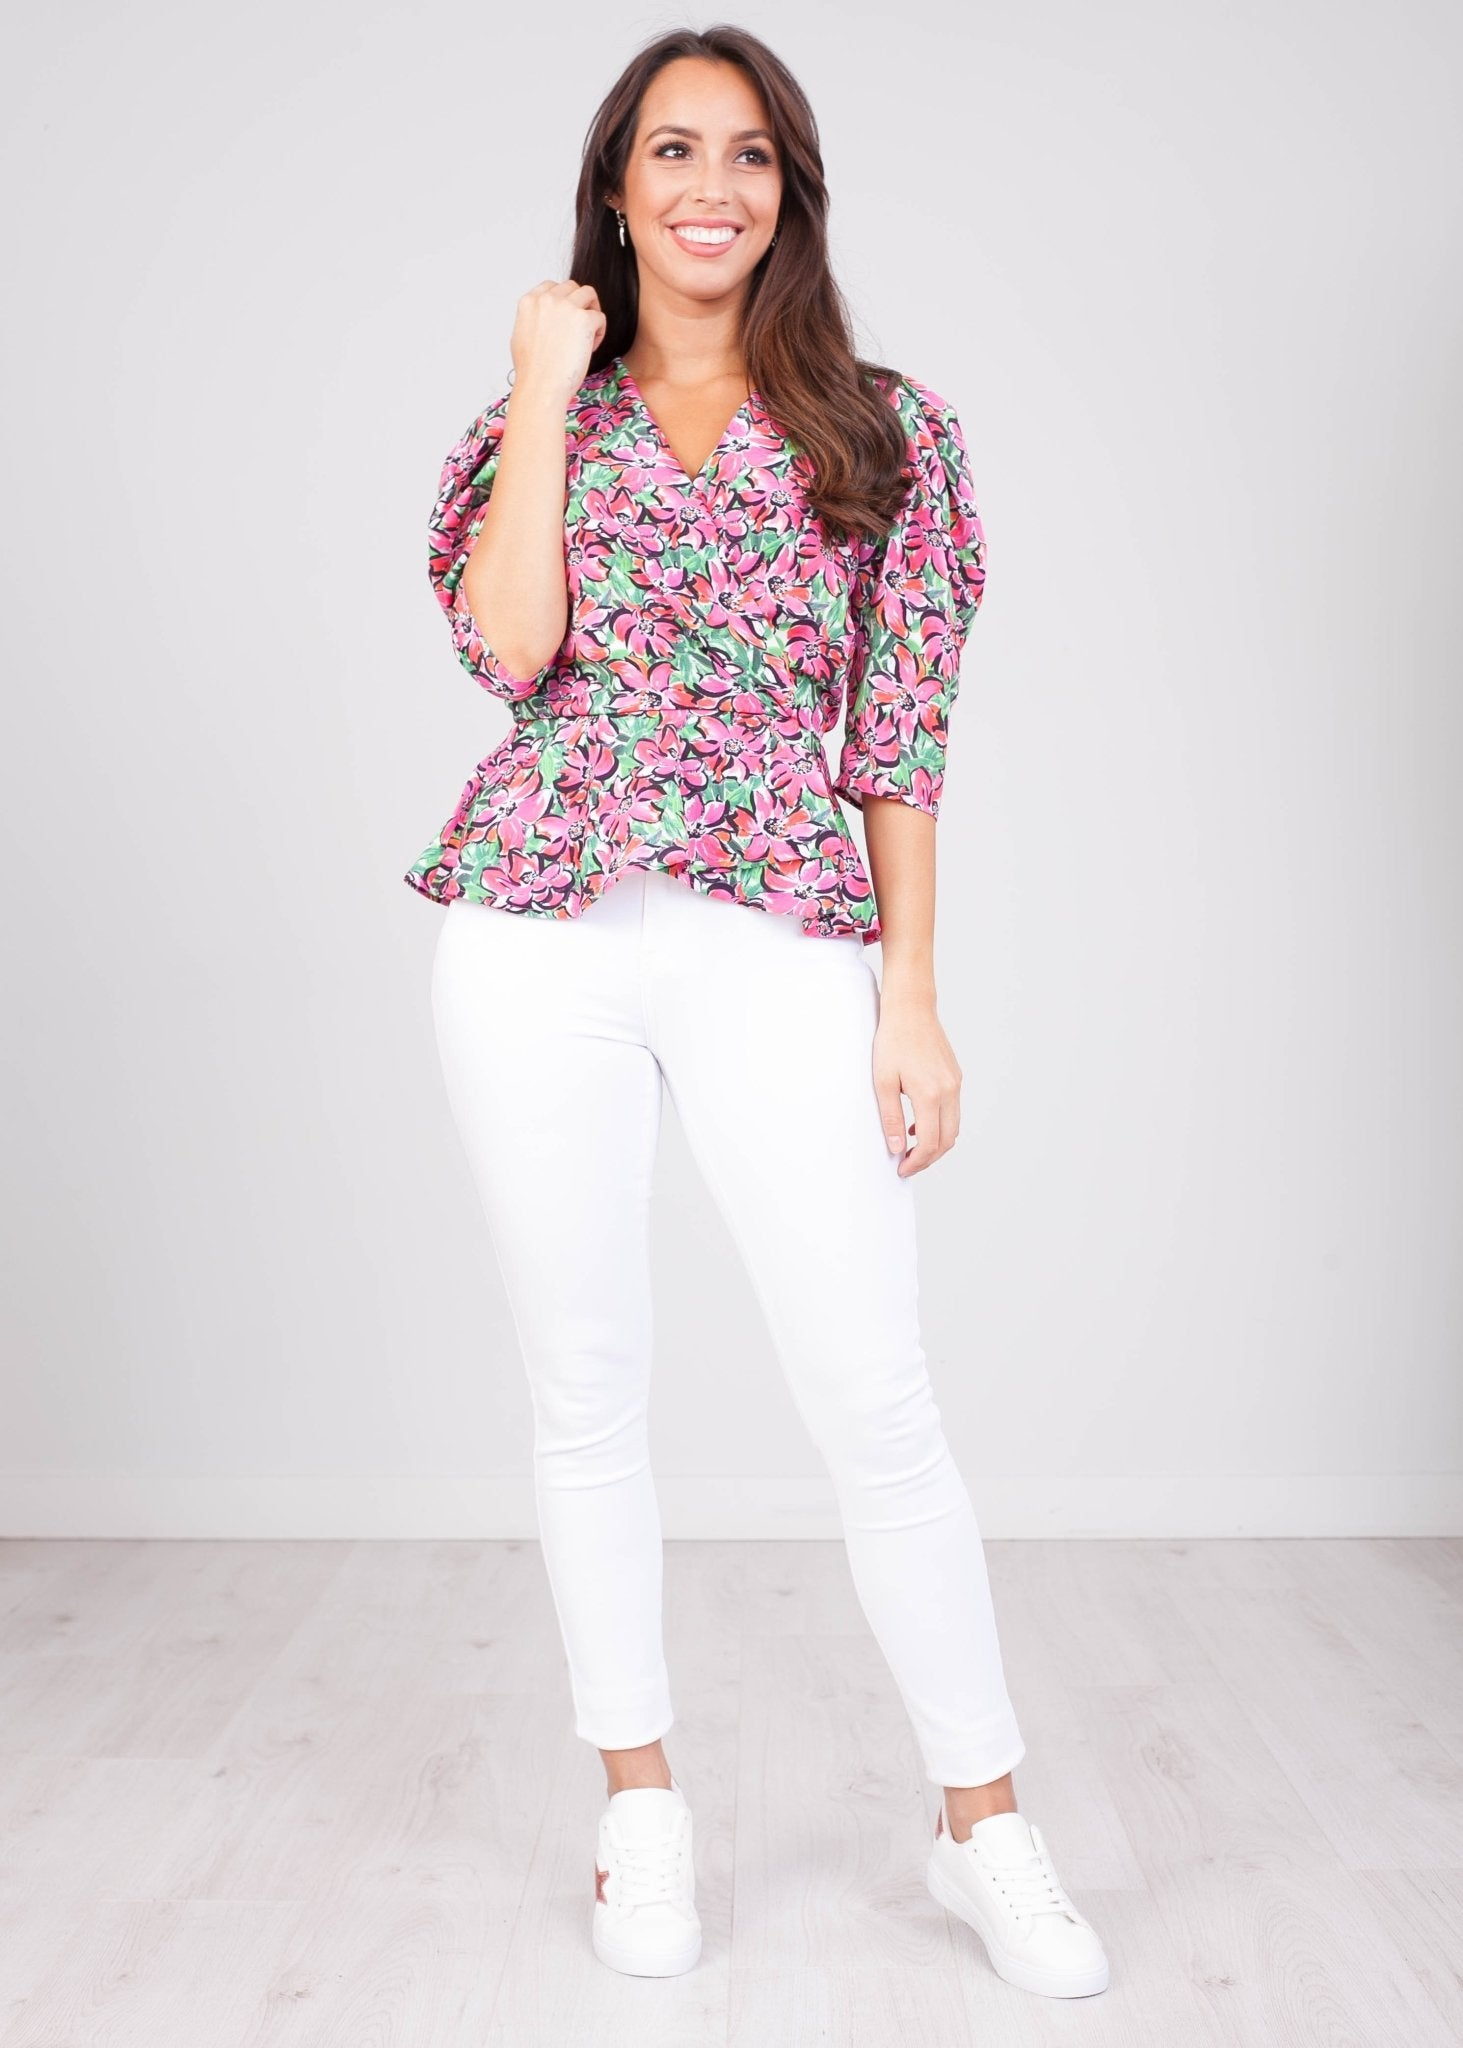 Charlee Red Floral Print Blouse - The Walk in Wardrobe